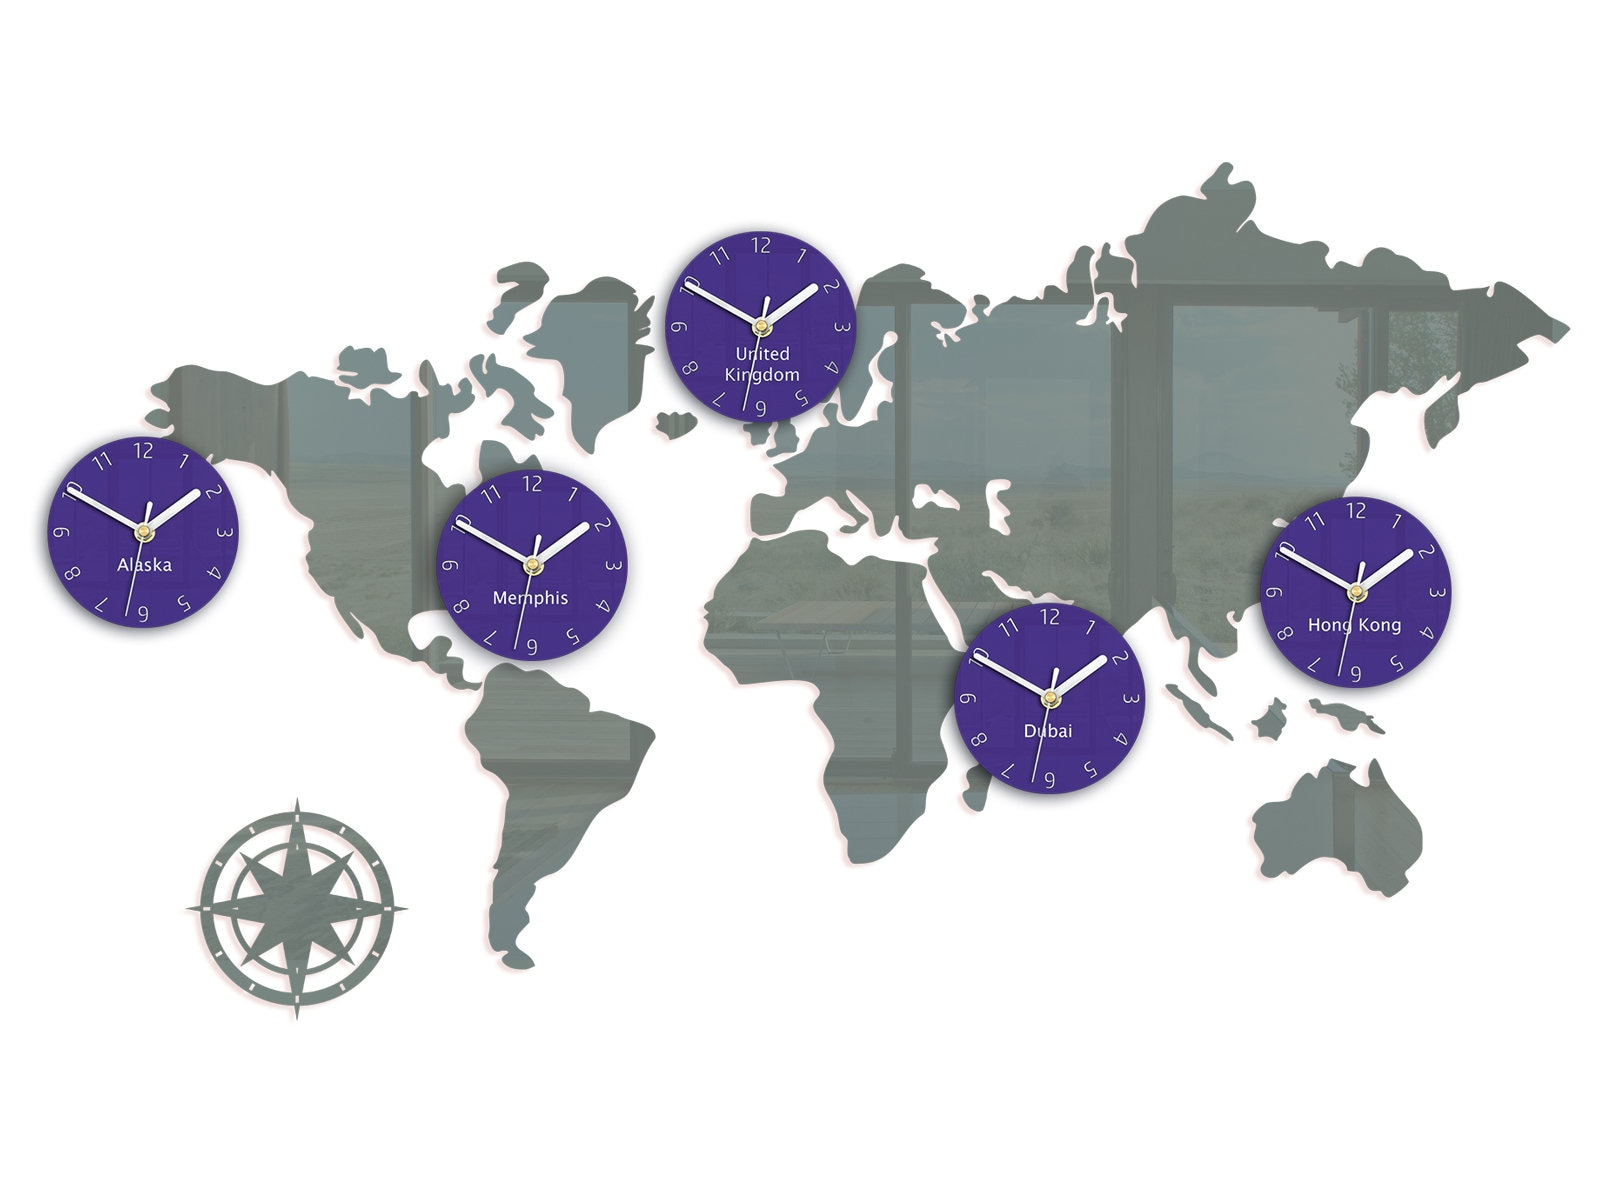 Large clock - Gray world map with 5 time zones: Hong Kong ... on afghanistan time zone, west coast time zone, panama time zone, cuba time zone, east caribbean time zone, ecuador time zone, fiji time zone, oceania time zone, new zealand time zone, norfolk island time zone, indonesia time zone, aleutian time zone, saskatchewan time zone, pacific ocean time zone, georgia time zone, faroe islands time zone, monaco time zone, alaska time zone, portugal time zone, belize time zone,